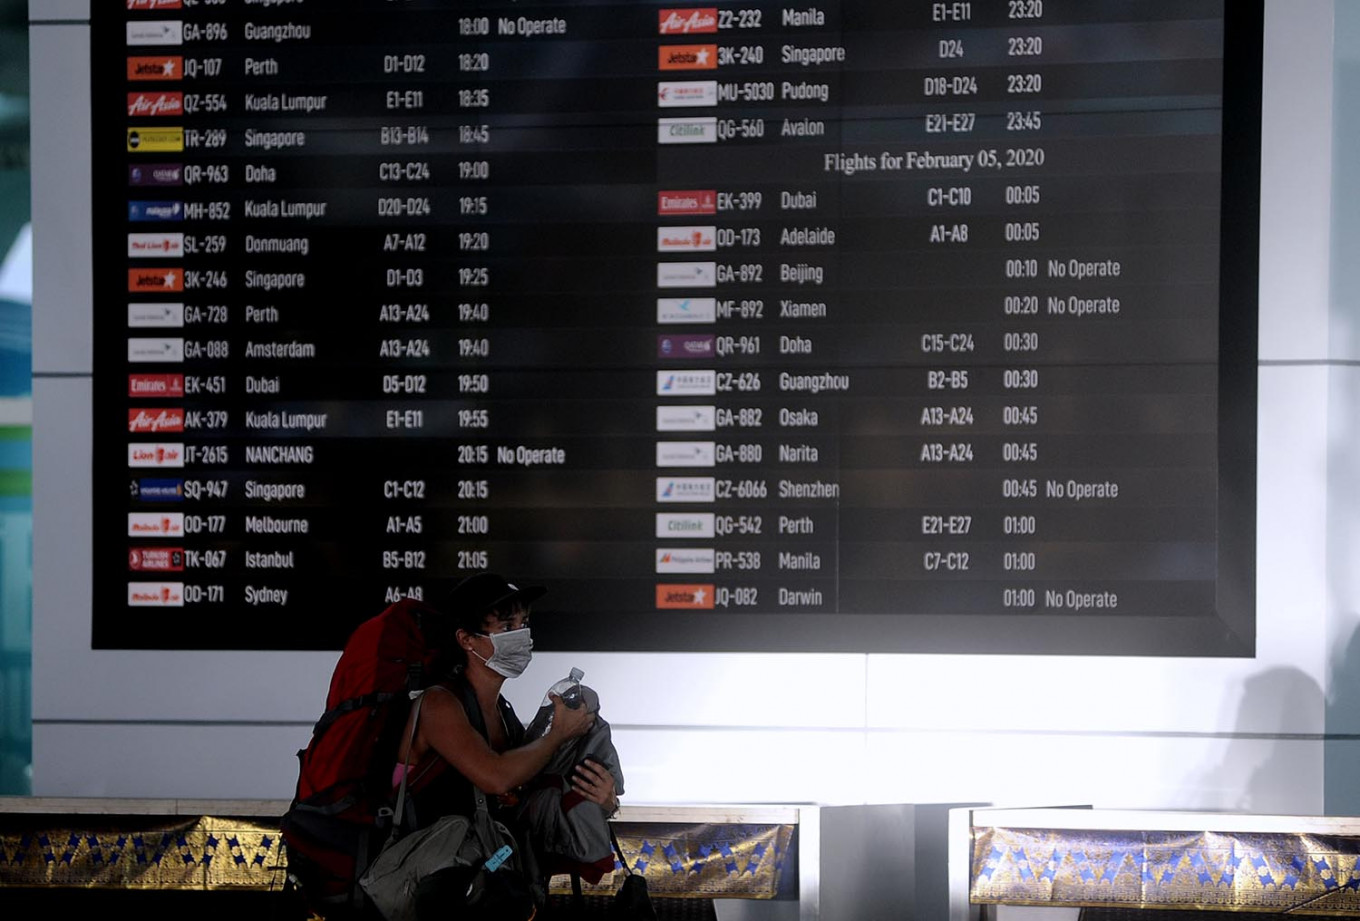 More than 12,000 flights canceled in two months over virus fears, says Angkasa Pura I